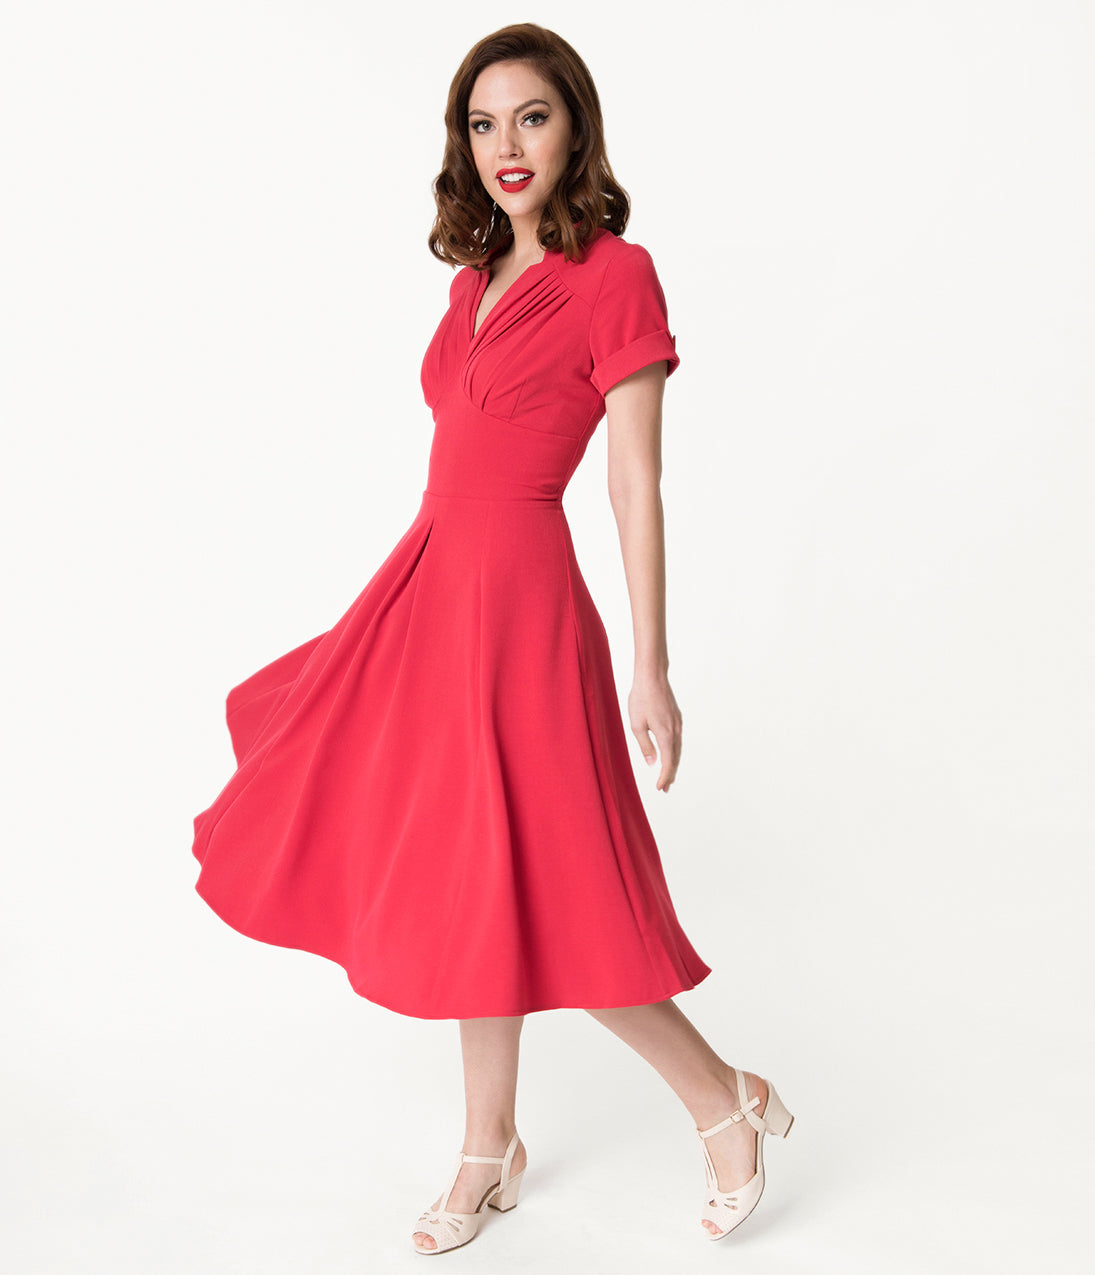 1940s Style Dresses | 40s Dress, Swing Dress Miss Candy Floss 1950S Style Red Sleeved Elena-Rose Swing Dress $94.00 AT vintagedancer.com